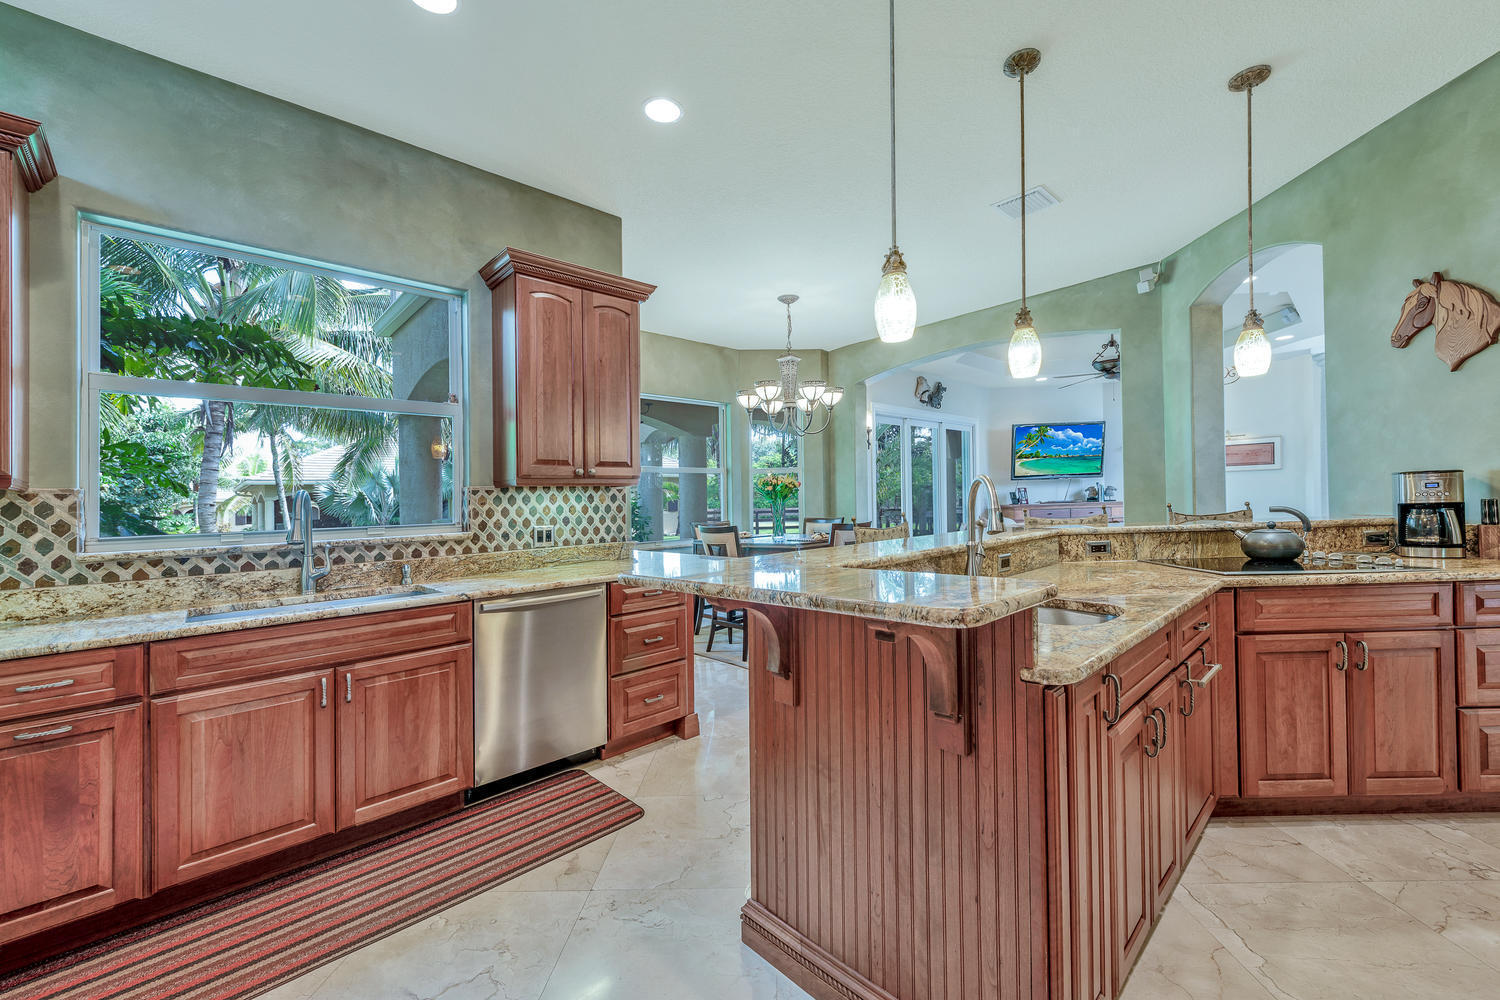 14235 Equestrian Way-large-018-44-Kitche